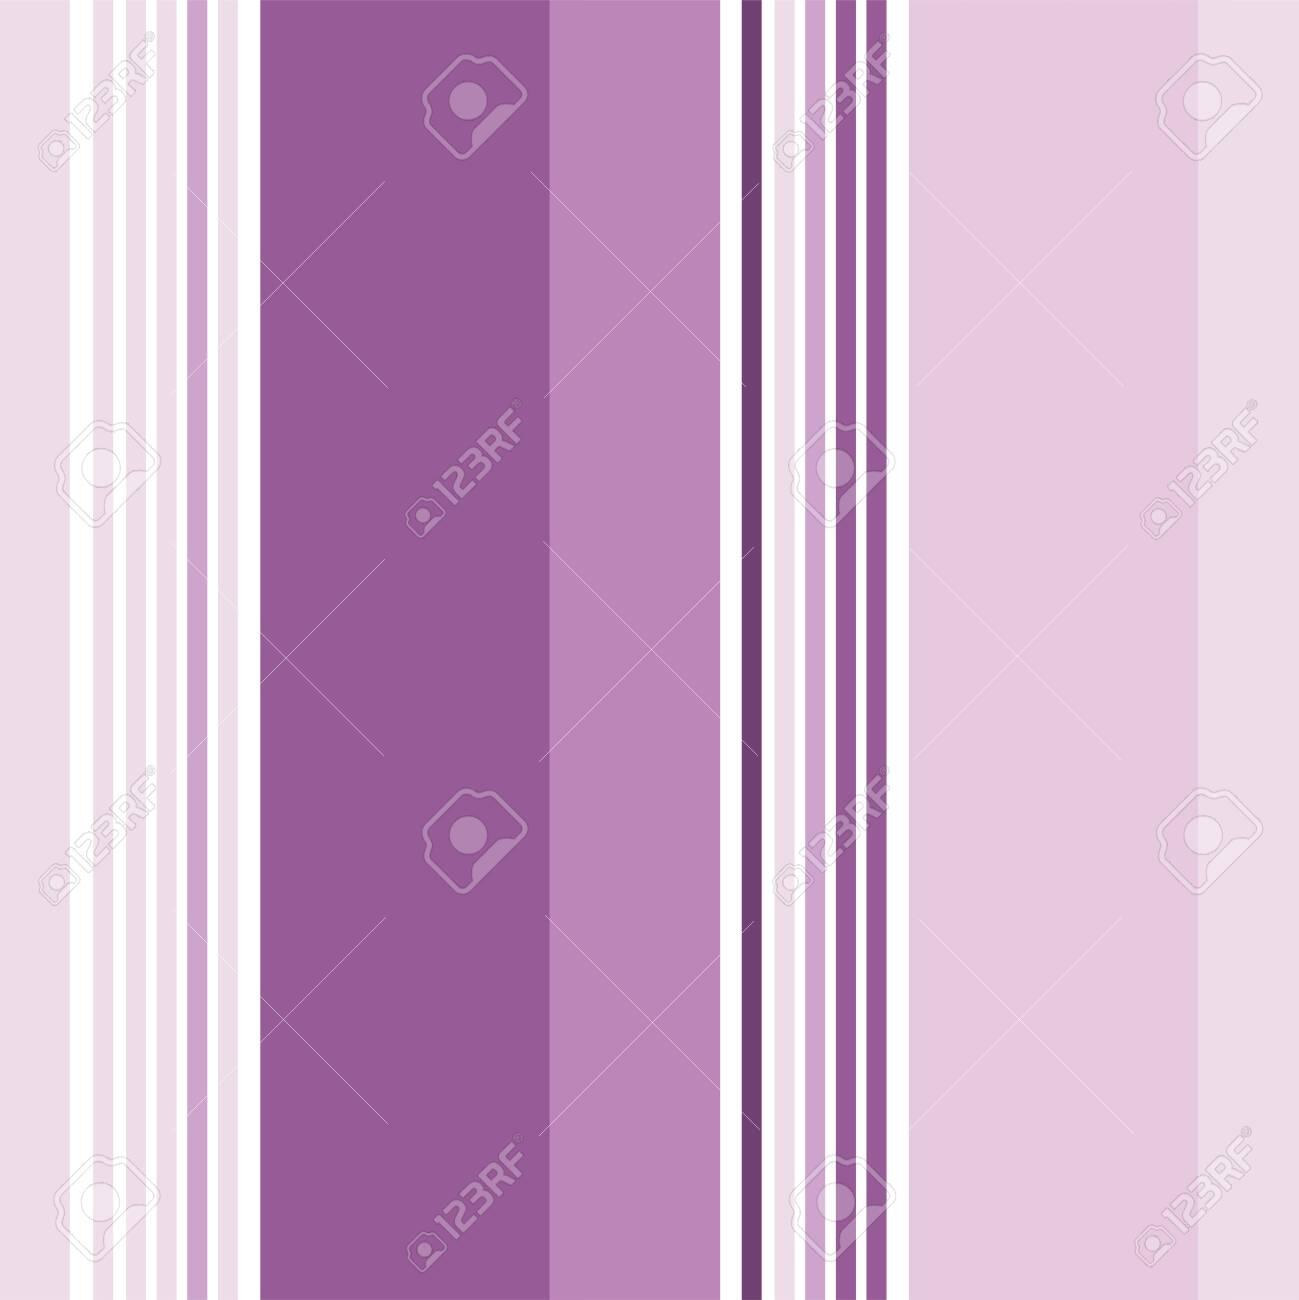 Vertical Stripes Seamless Pattern Cool Lines Endless Design Royalty Free Cliparts Vectors And Stock Illustration Image 140699832